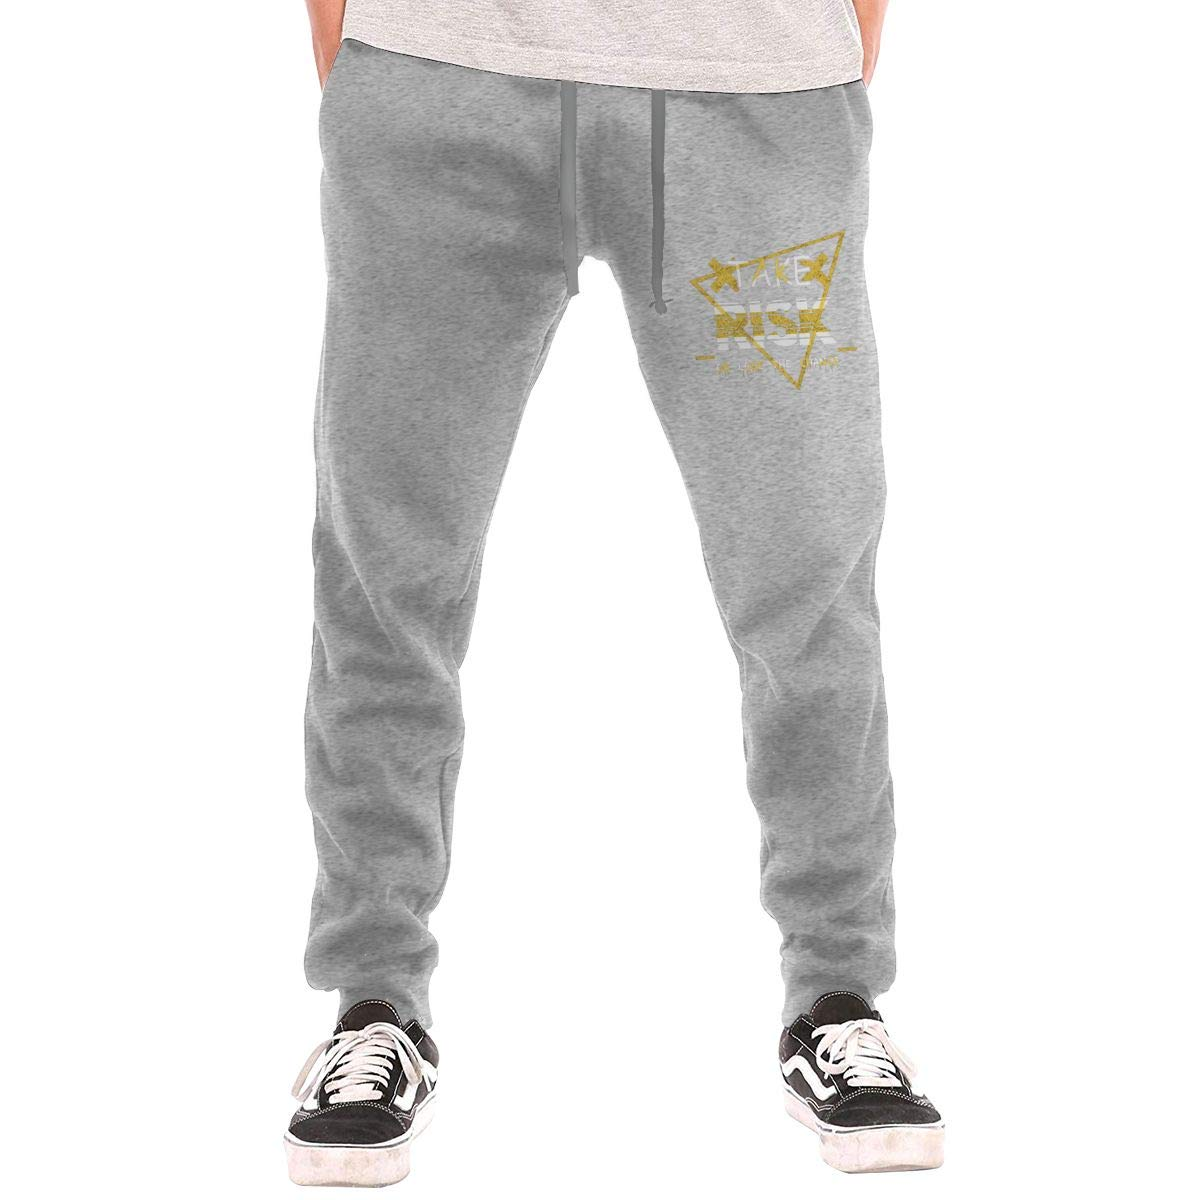 Dbou Take Risk Or Lose The Chance Drawstring Waist,100/% Cotton,Elastic Waist Cuffed,Jogger Sweatpants Black